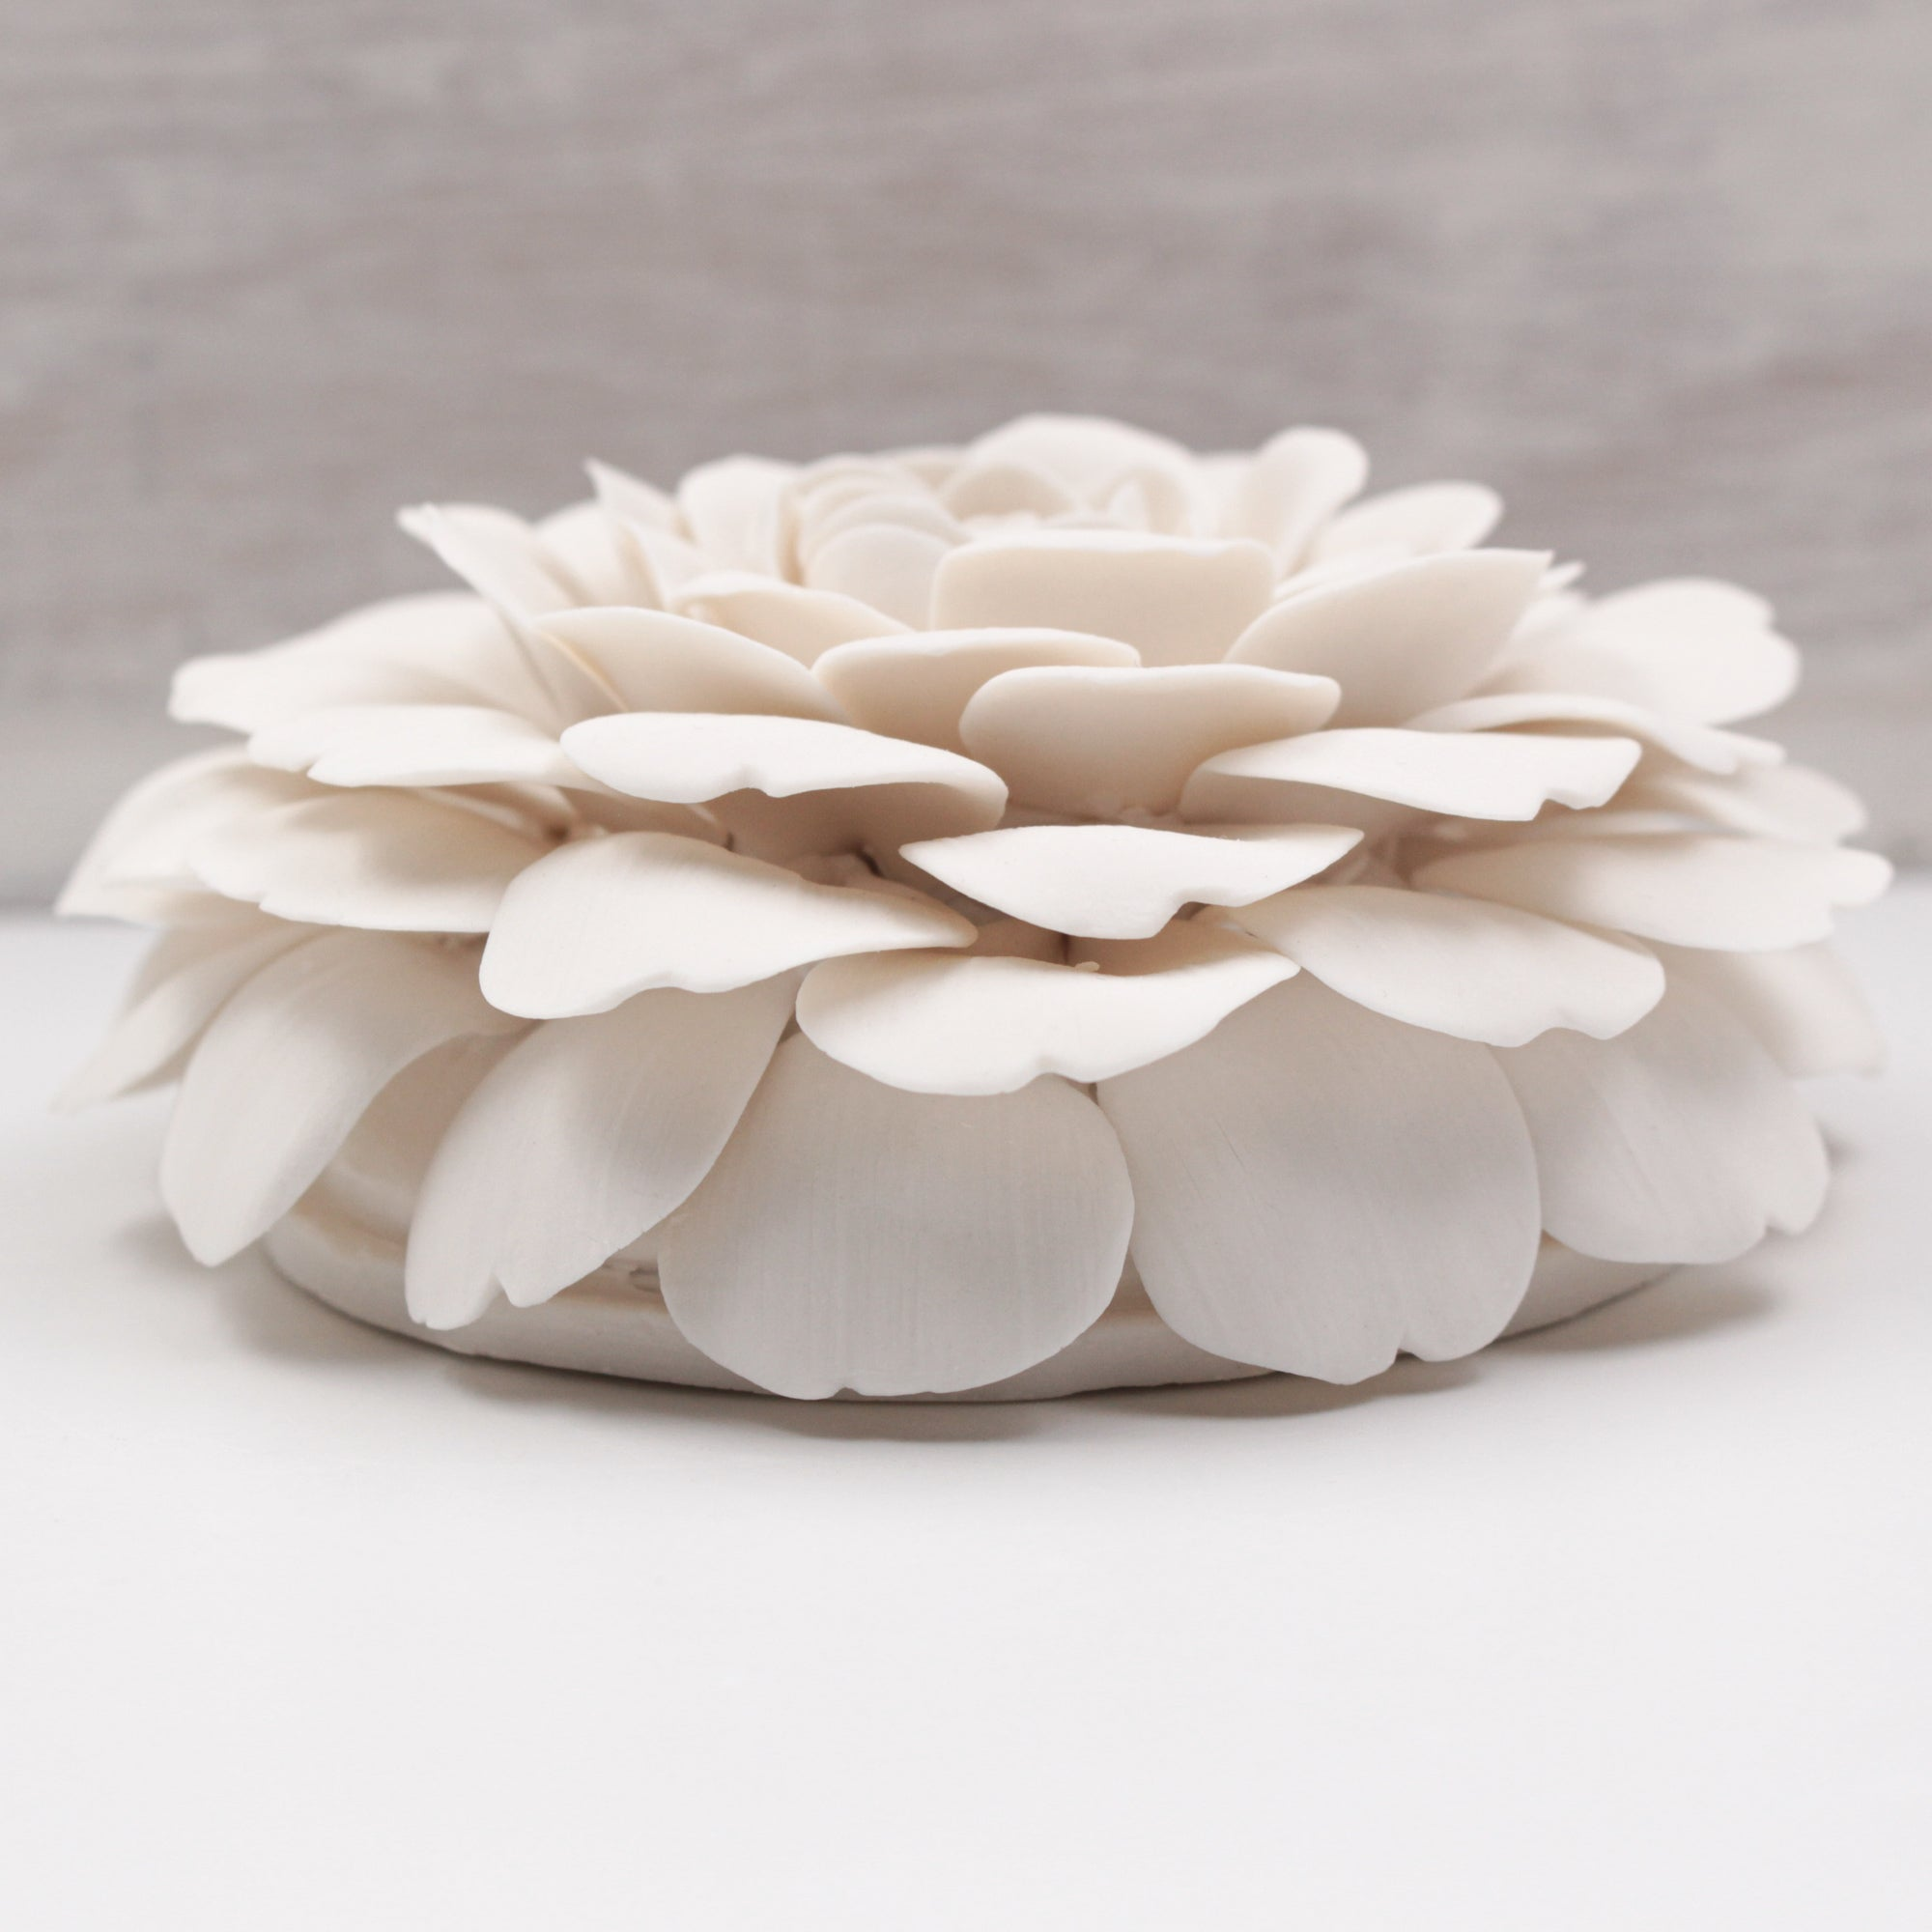 Large Porcelain Camellia - Handmade Porcelain Flower for Interior and Event Decoration - Made in France by Alain Granell